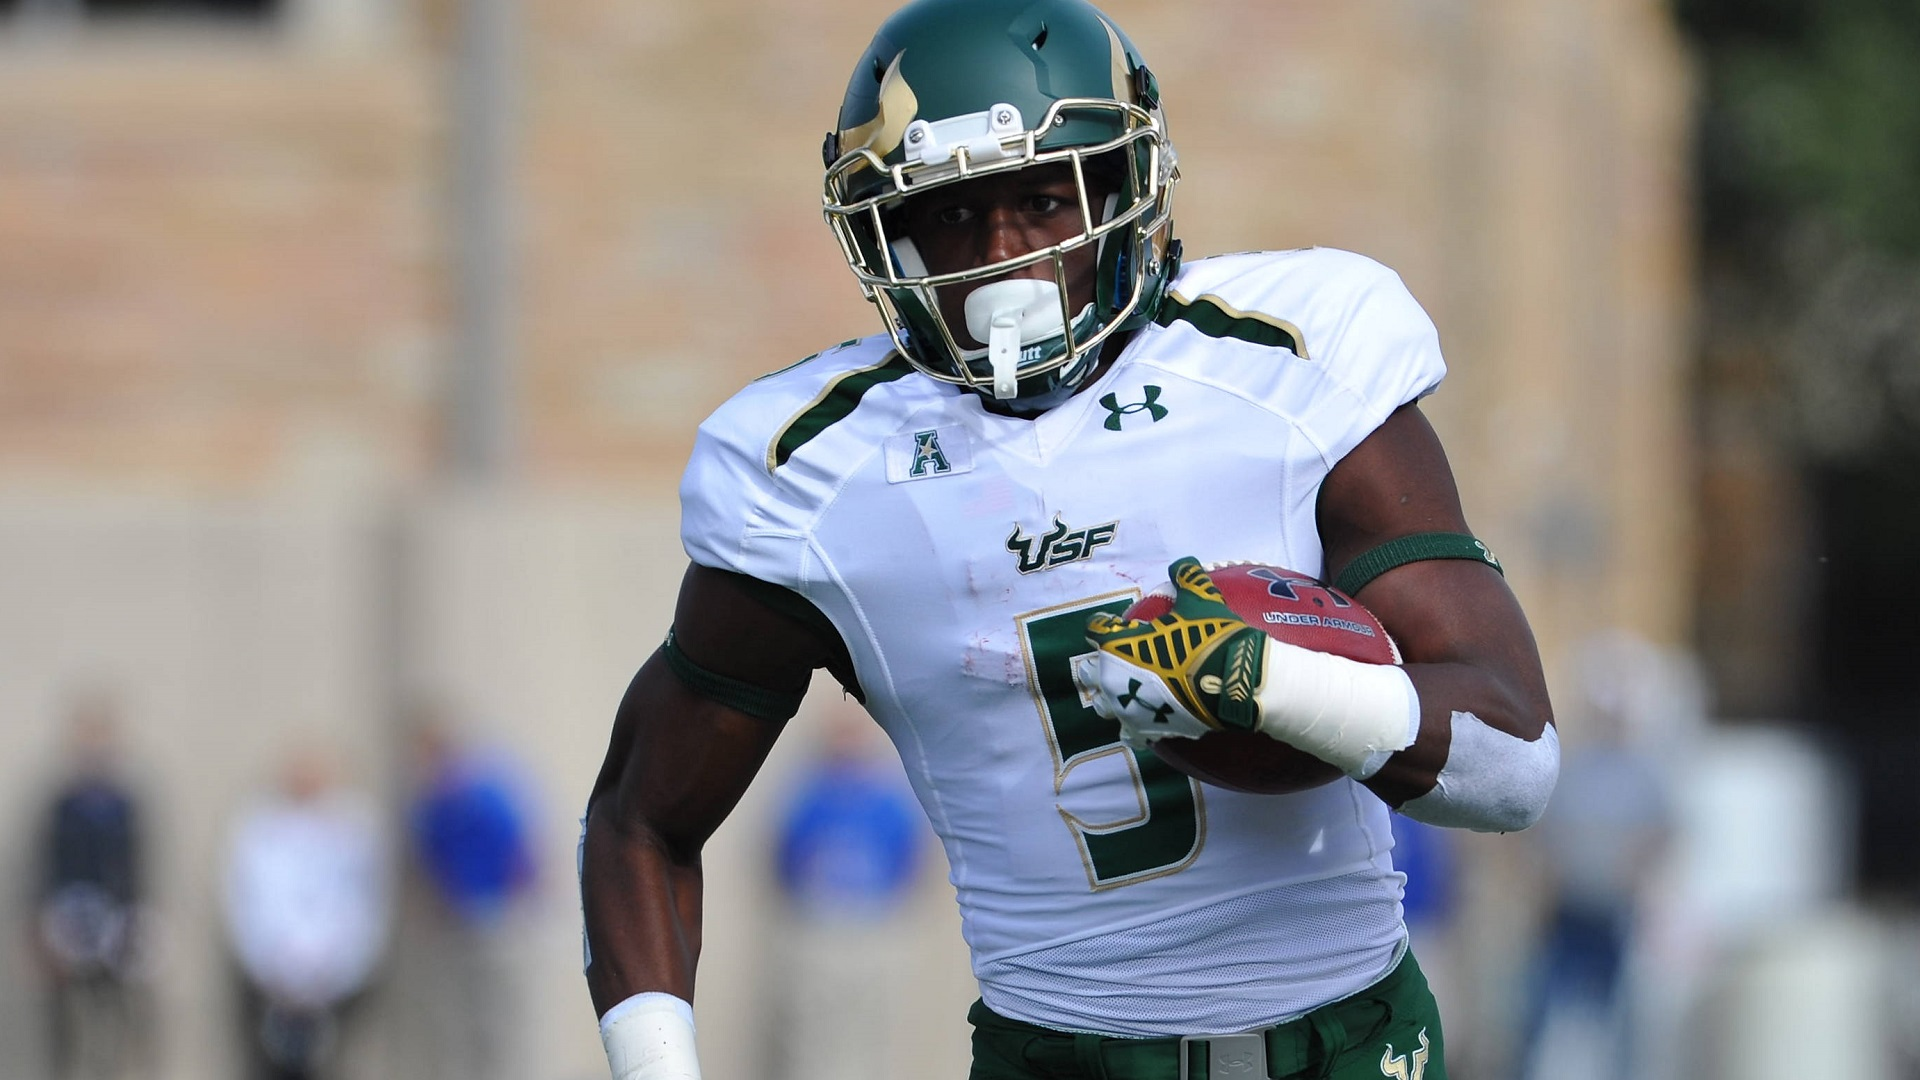 Marlon Mack 2018 player profile game log season stats career stats recent news If you play fantasy sports get breaking news and immerse yourself in the ultimate